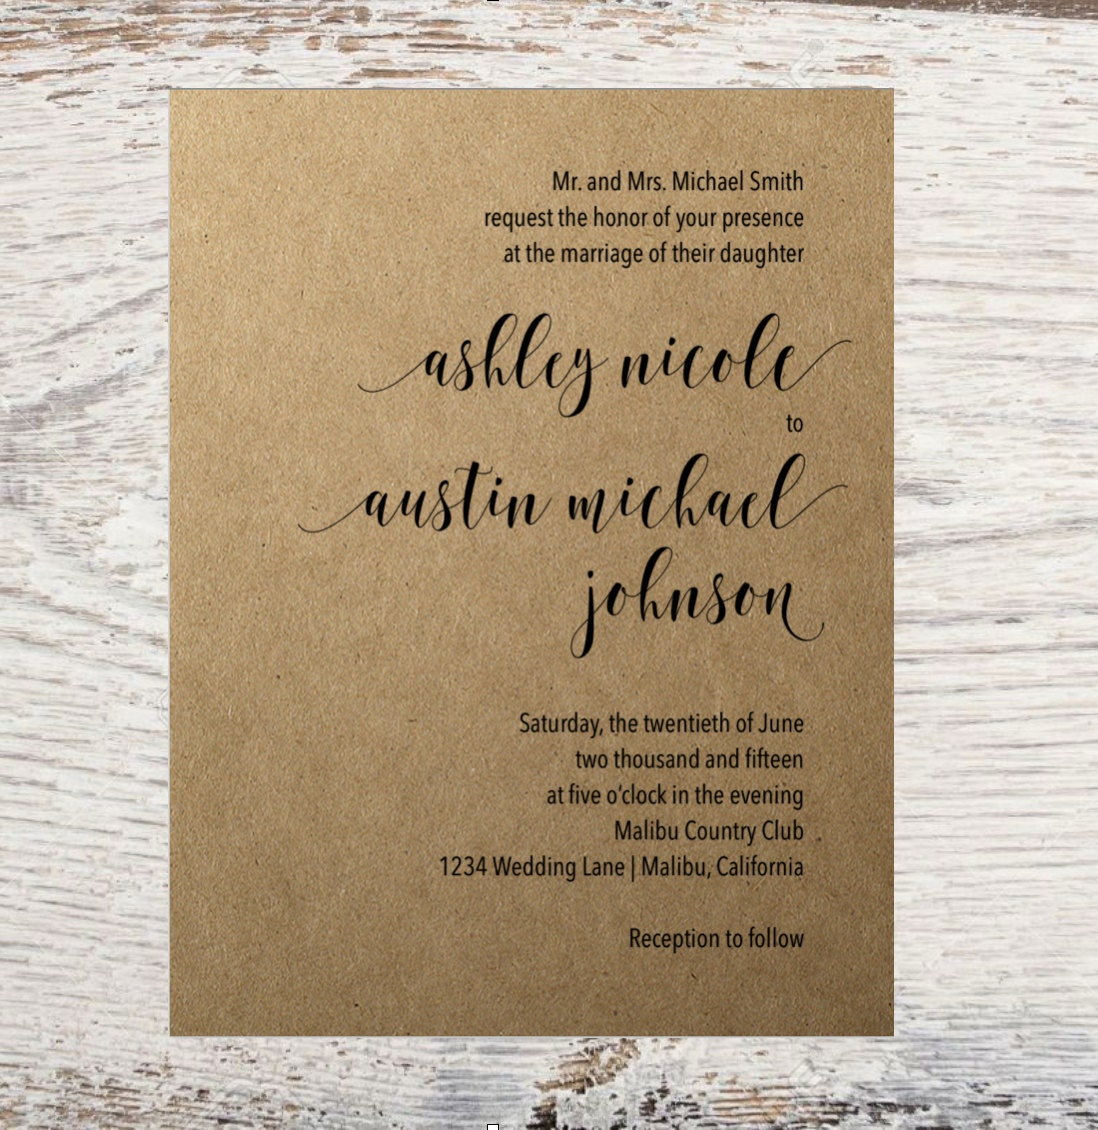 Wedding Invitation Basic Wedding Invitation Simple Timeless